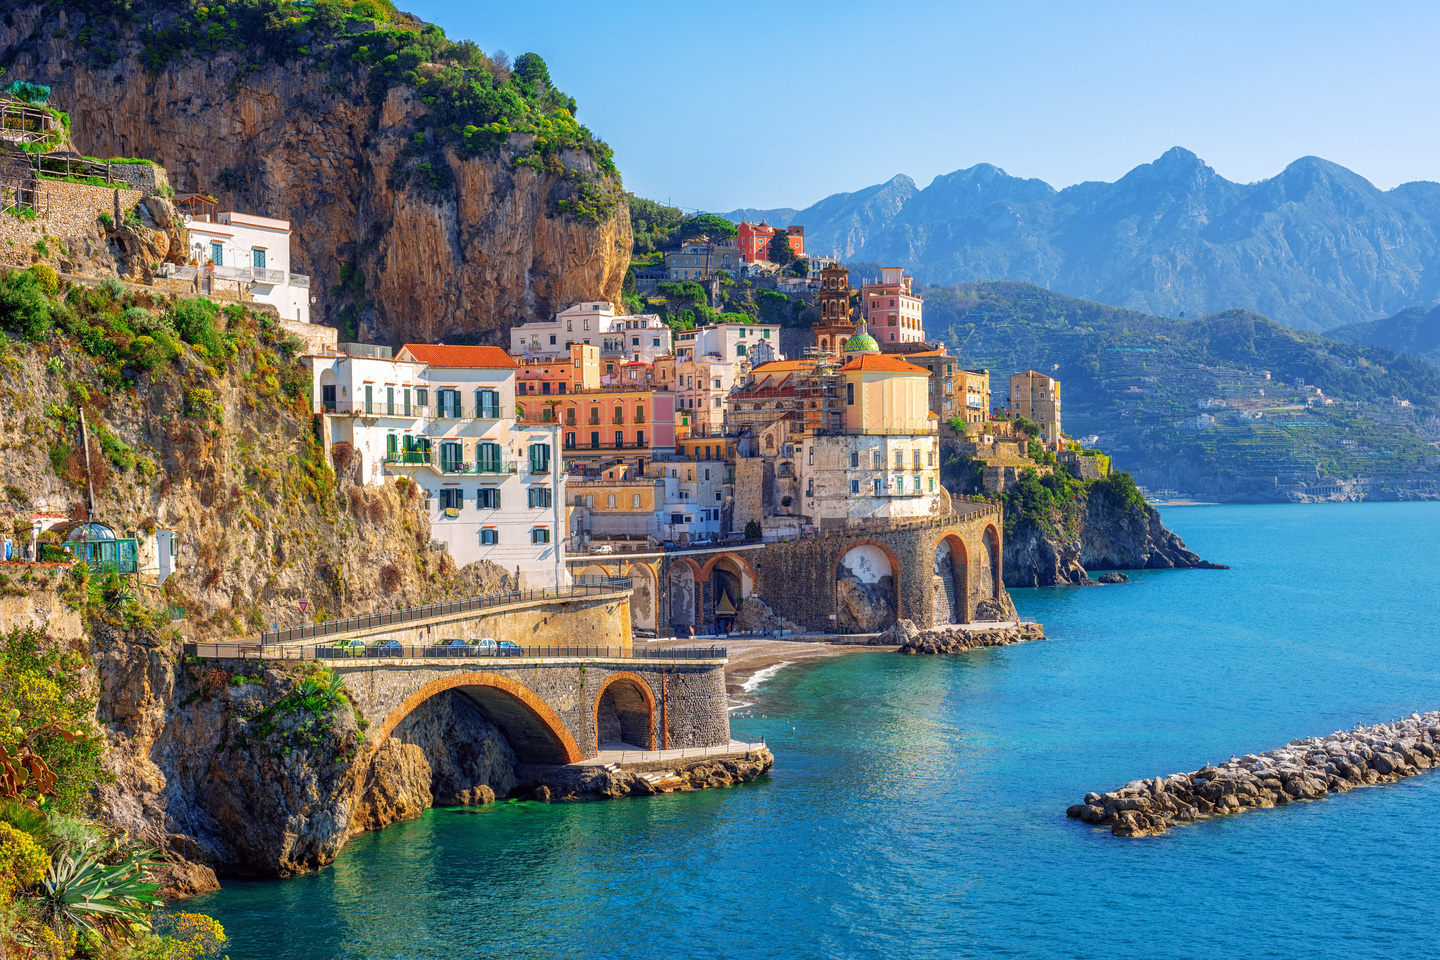 http://The%20Ultimate%20Amalfi%20Coast%20Road%20Trip